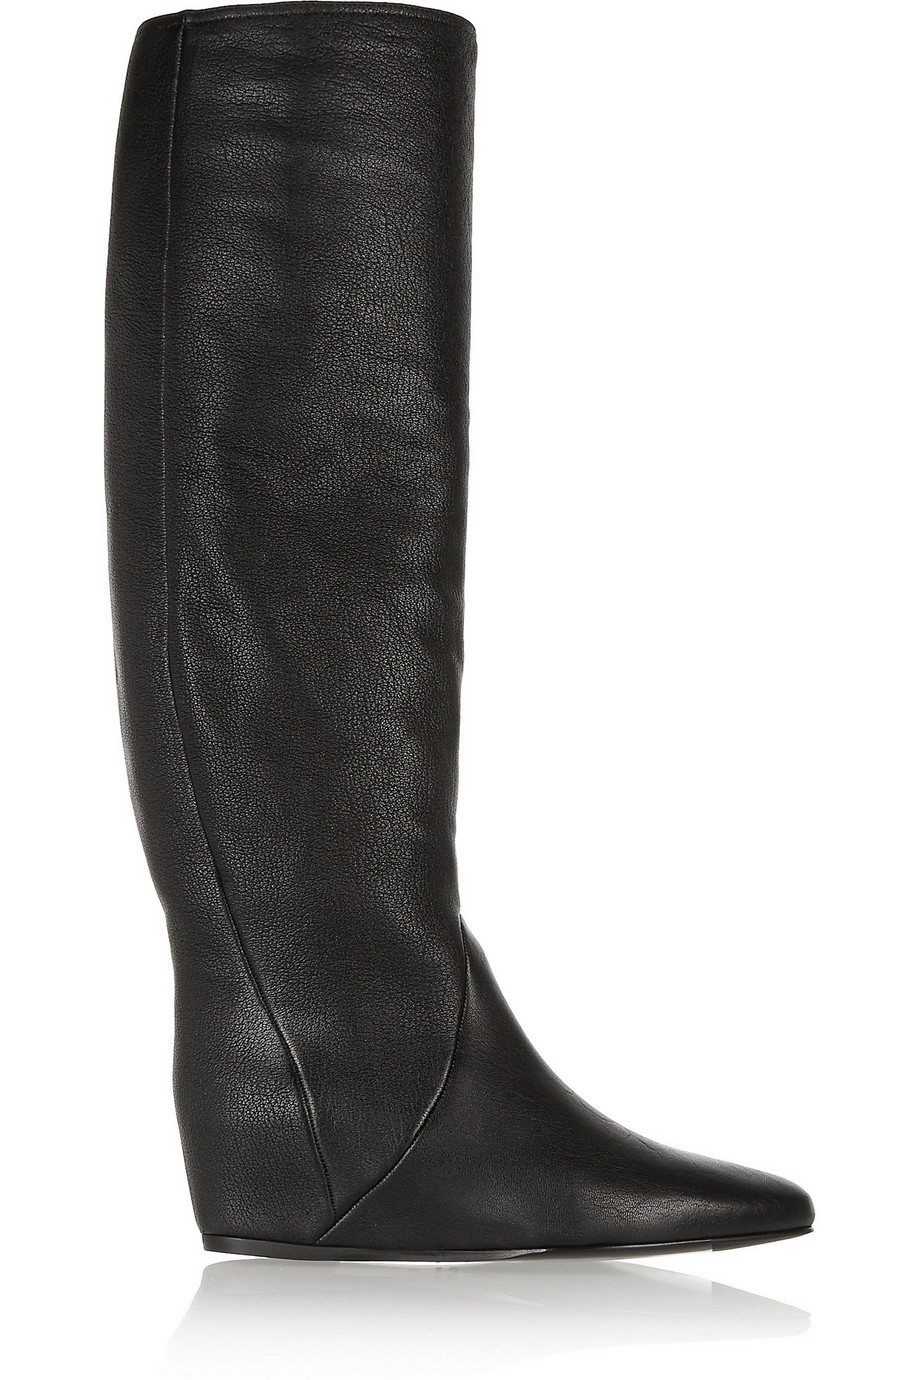 Lanvin Textured-Leather Wedge Knee Boots, Black, Women's US Size: 4.5, Size: 35